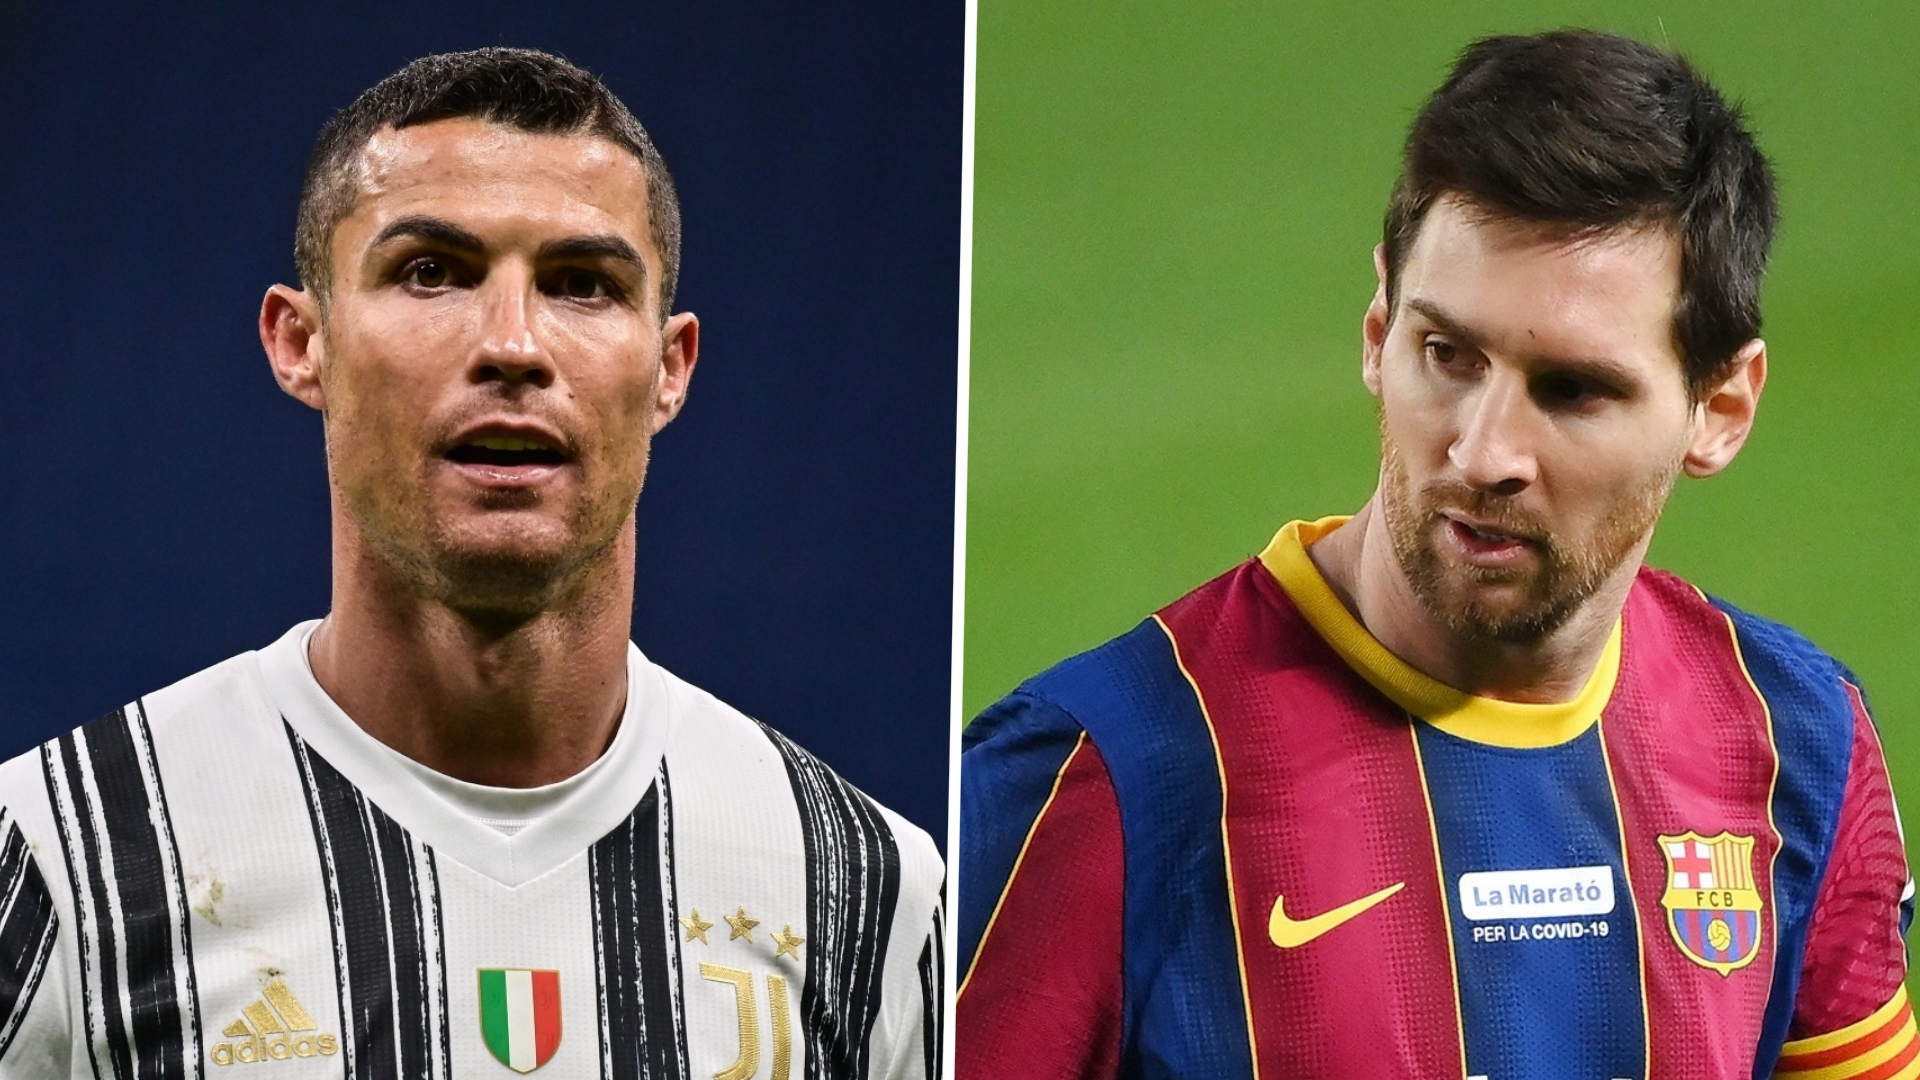 Messi and Ronaldo both miss Champions League quarter-finals for first time in 16 years